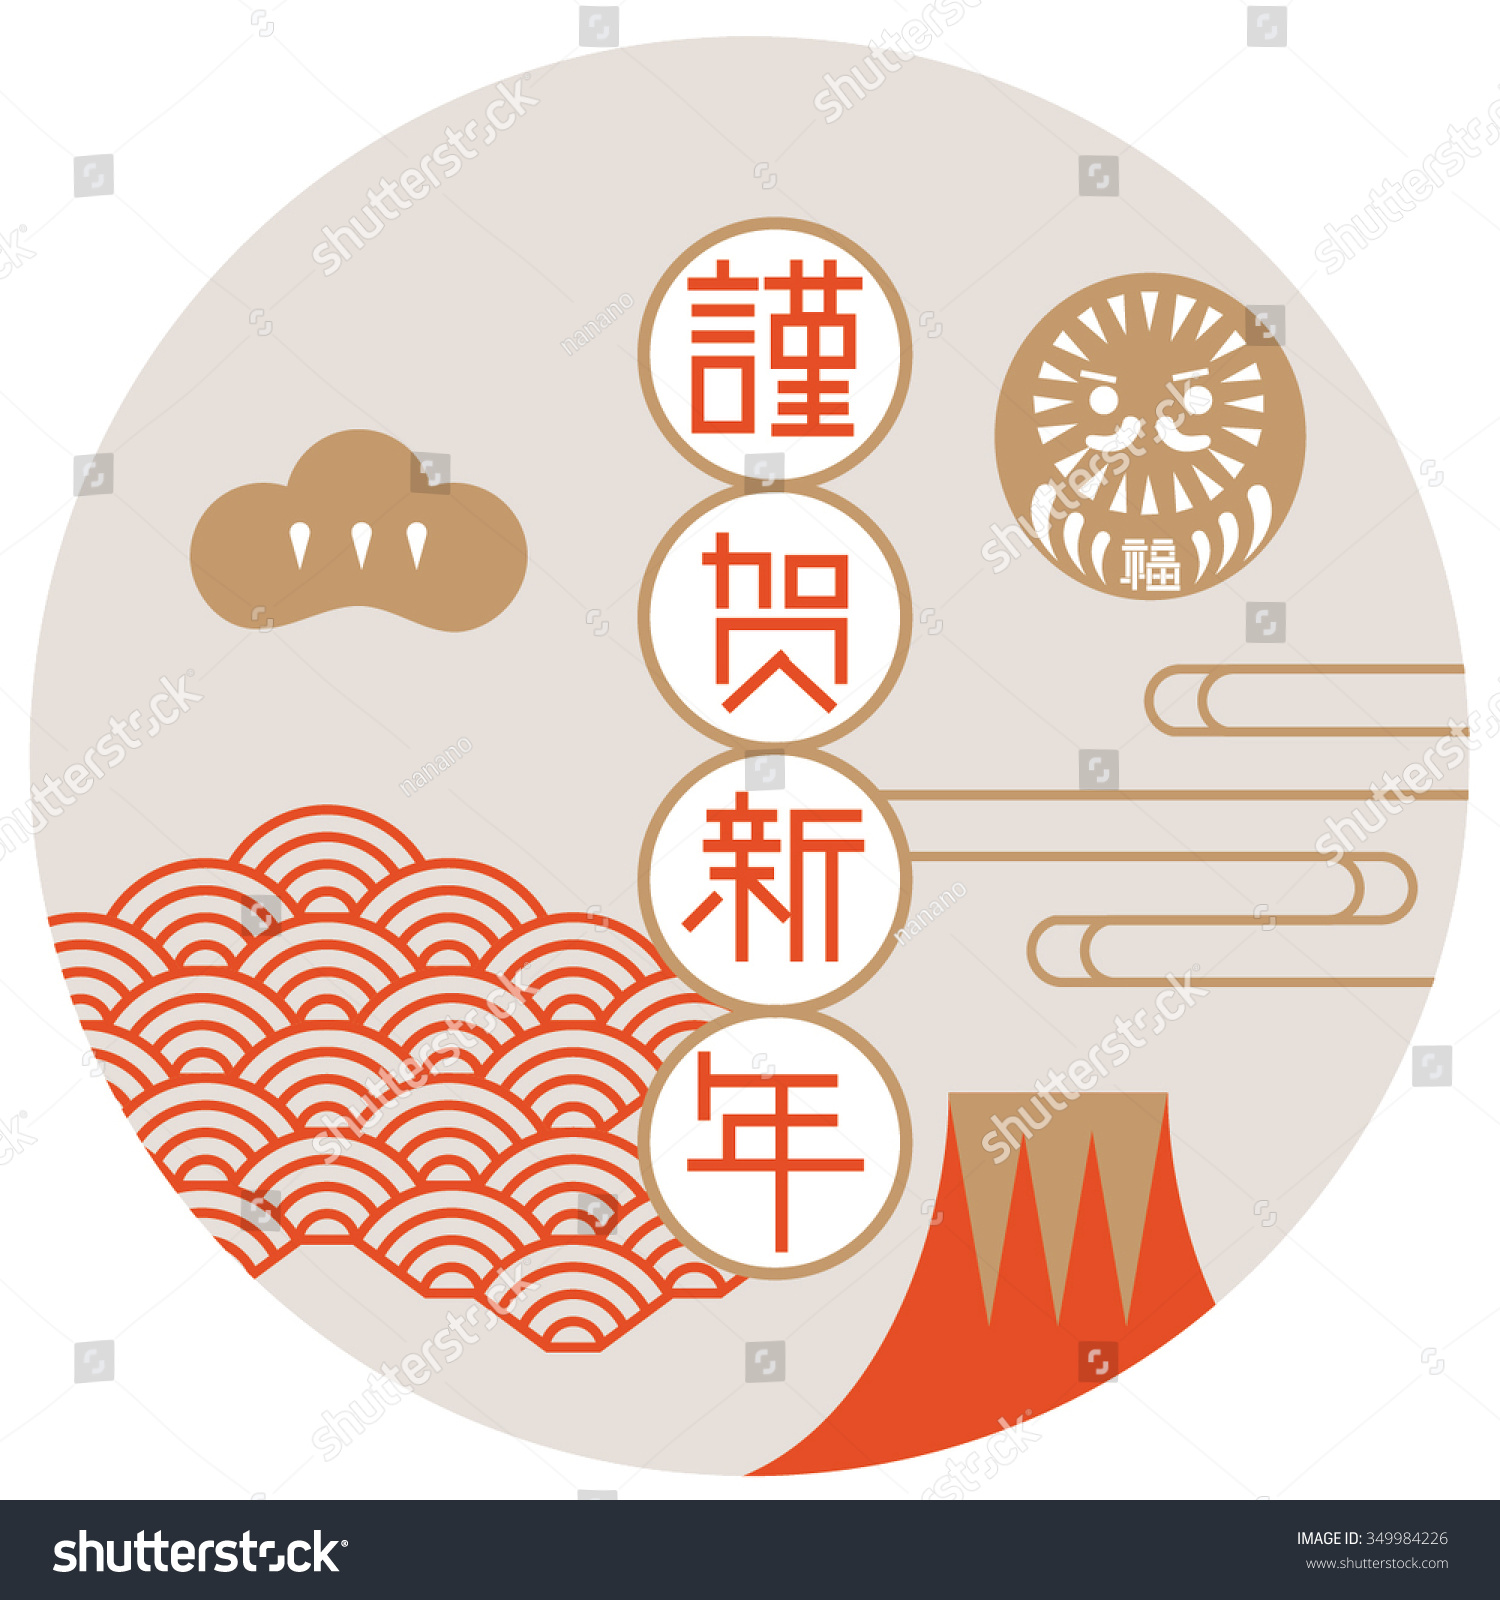 chinese new year design element 2016 greetings have a blessing year in 2016 year of monkey invite label design stock photo